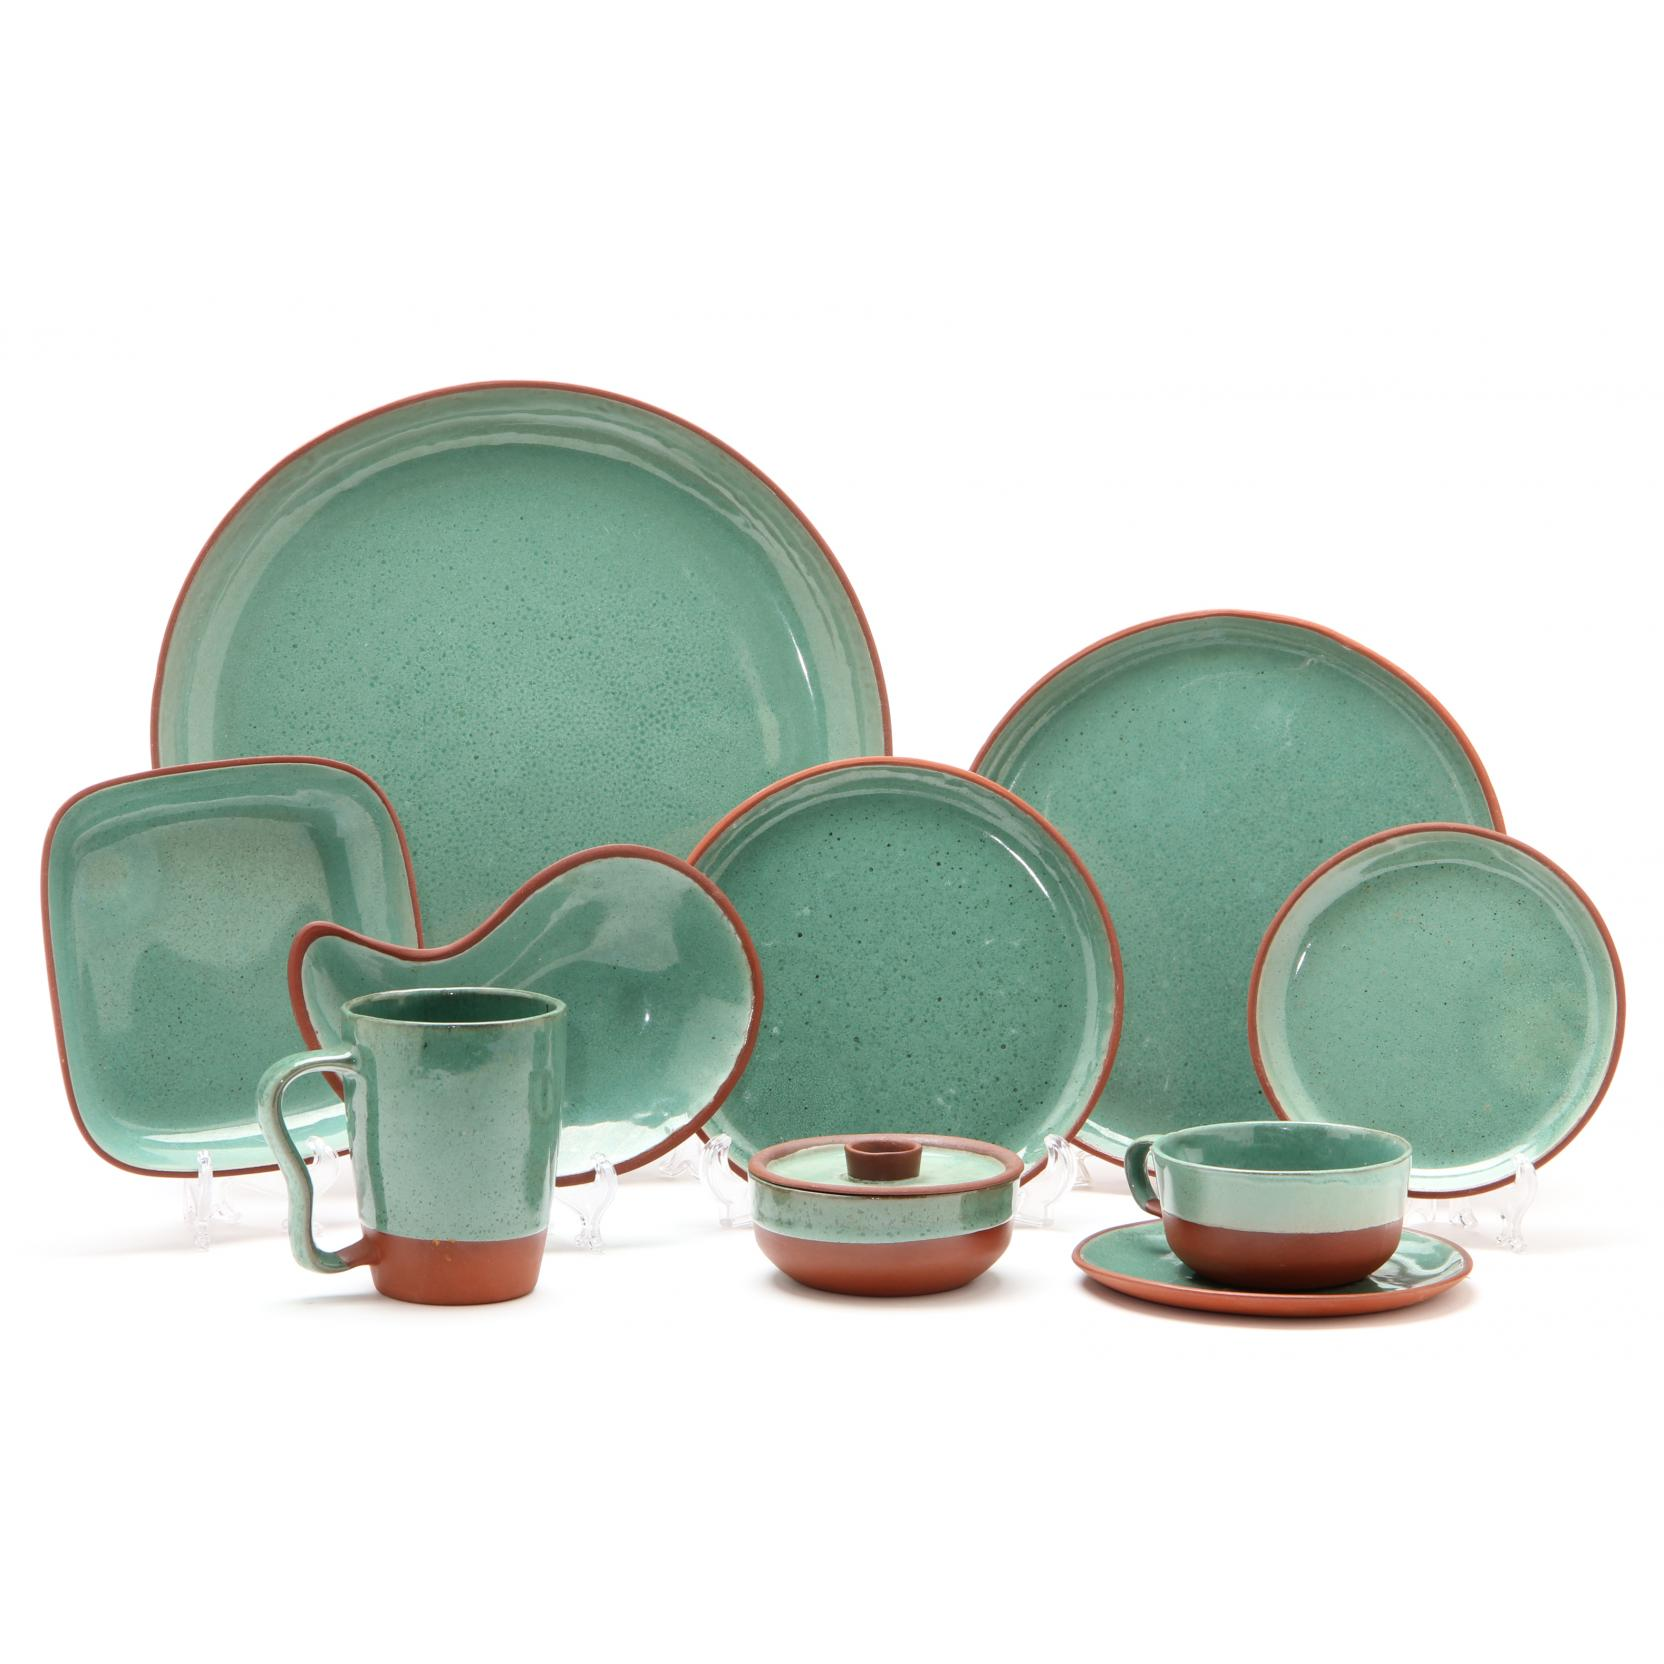 beatrice-albert-southern-harvest-dinnerware